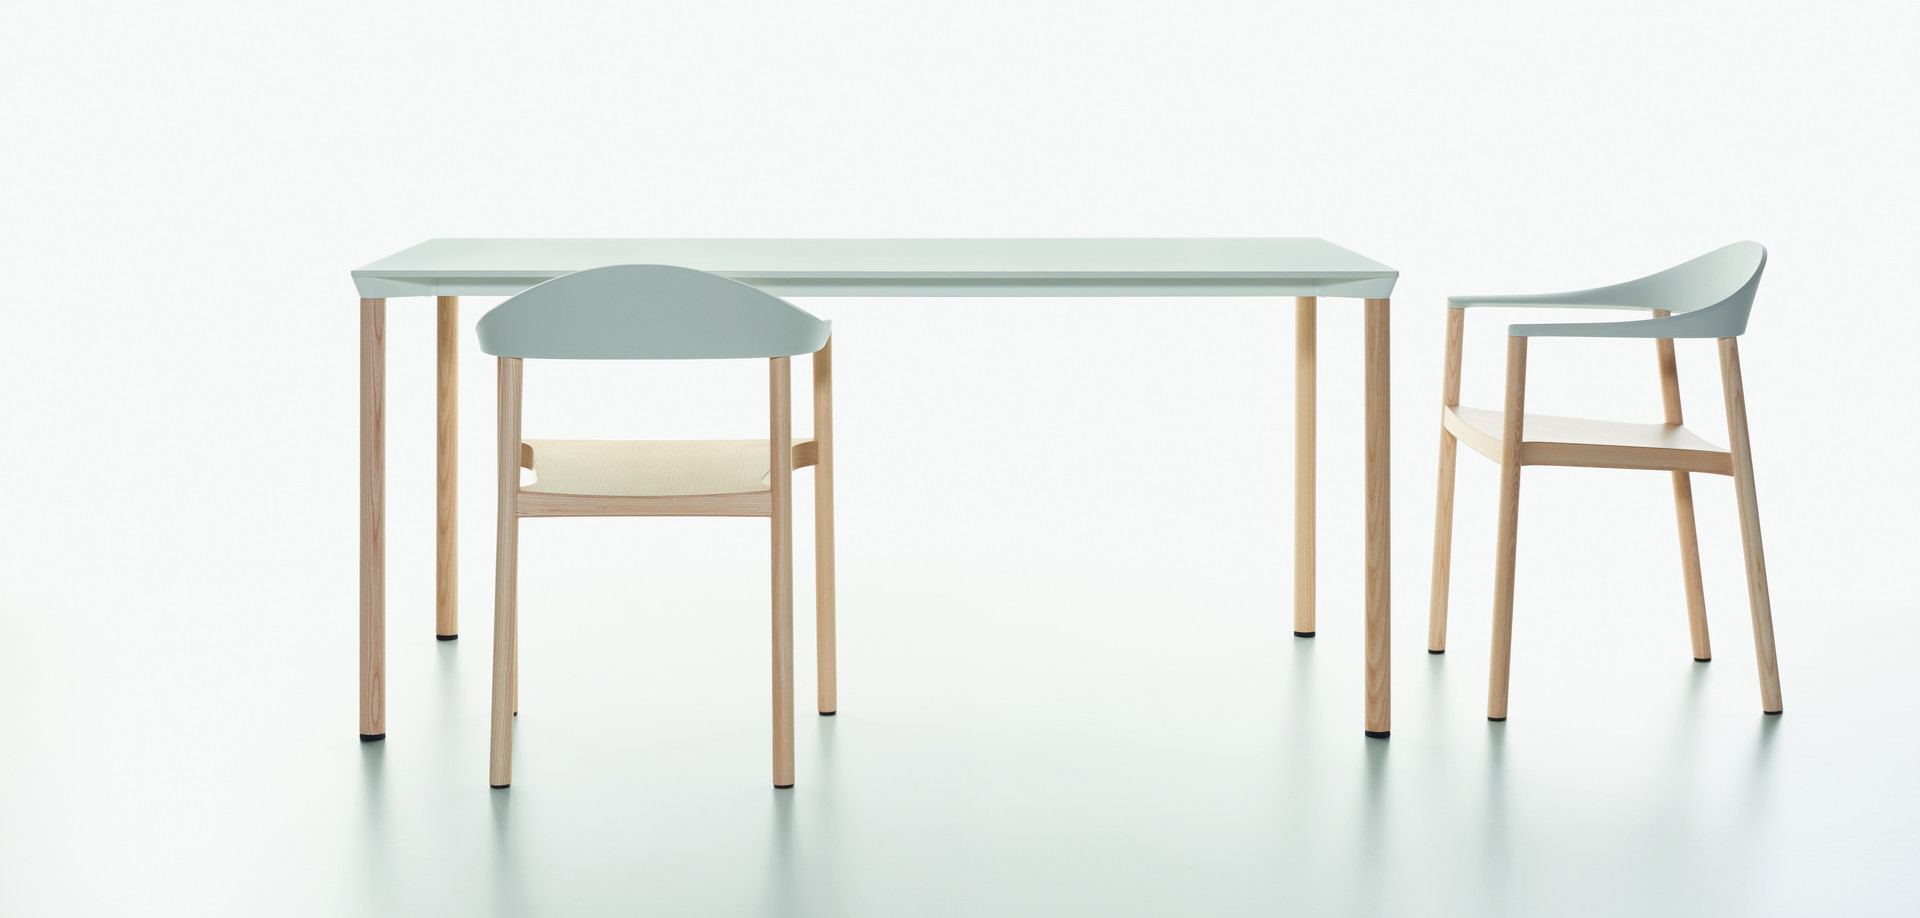 Plank - MONZA table rectangular, white HPL table top, natural ash legs - MONZA armchair